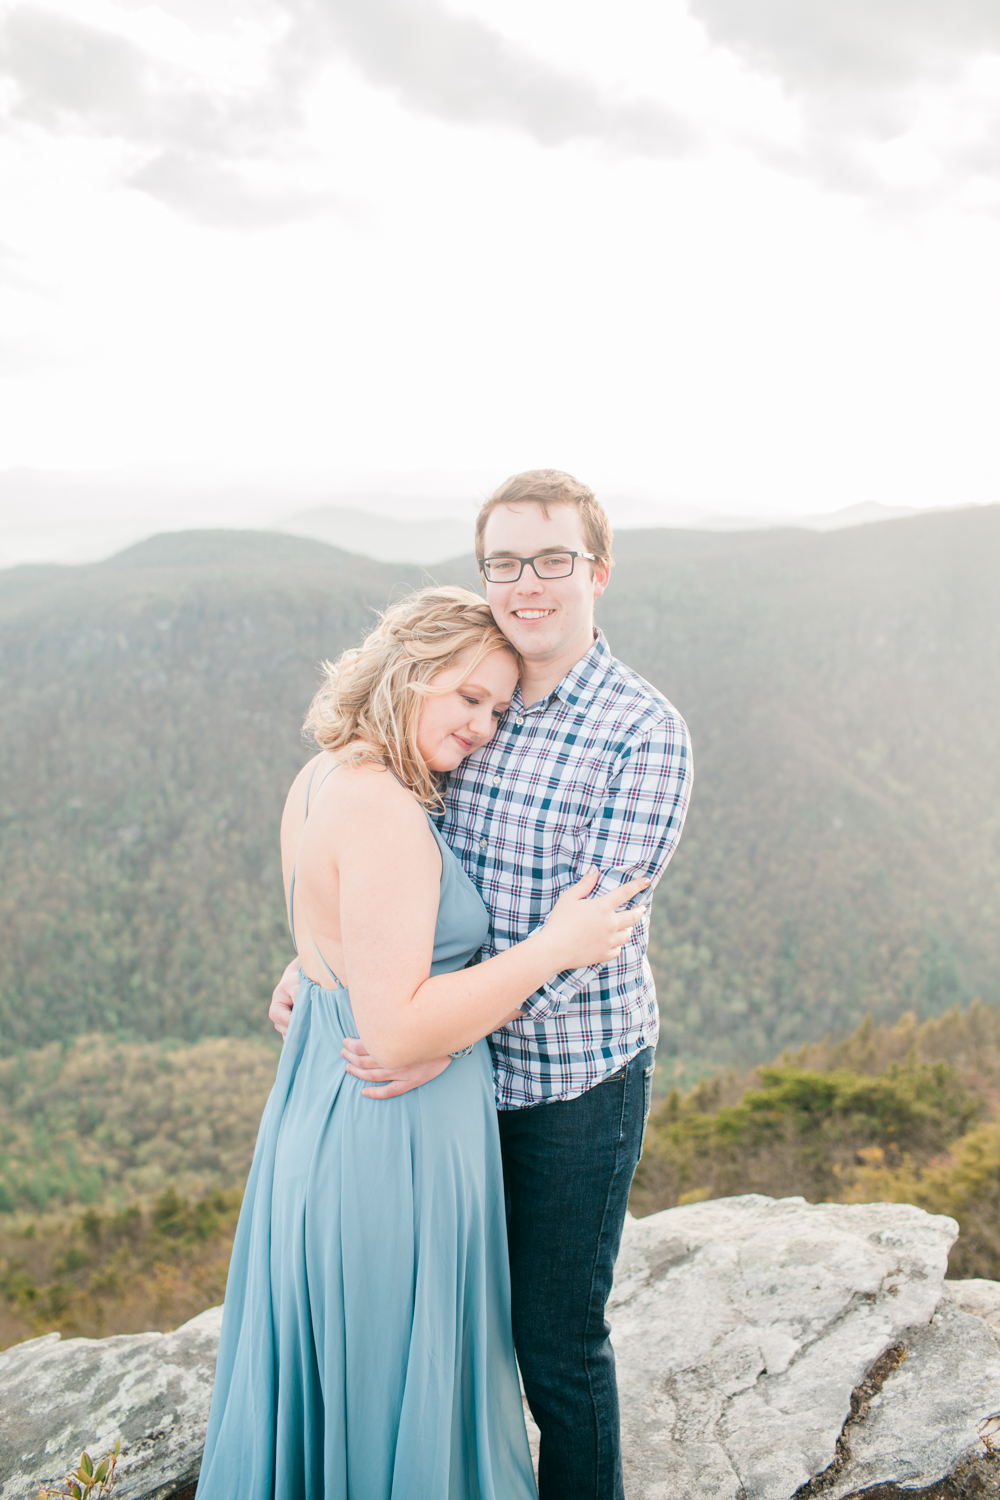 ashevilleweddingphotographer-57.jpg